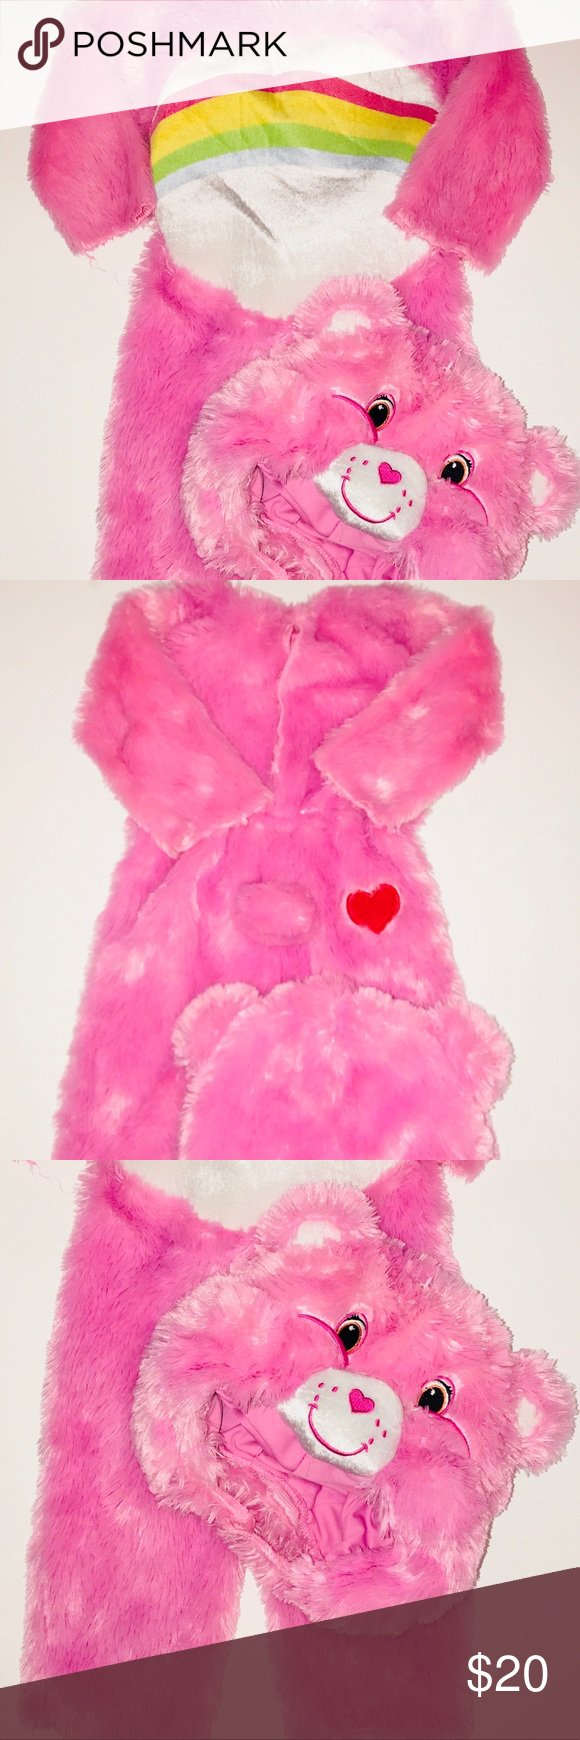 Care Bear Costume Excellent Used Condition, Halloween Costume Costumes Halloween #carebearcostume Care Bear Costume Excellent Used Condition, Halloween Costume Costumes Halloween #carebearcostume